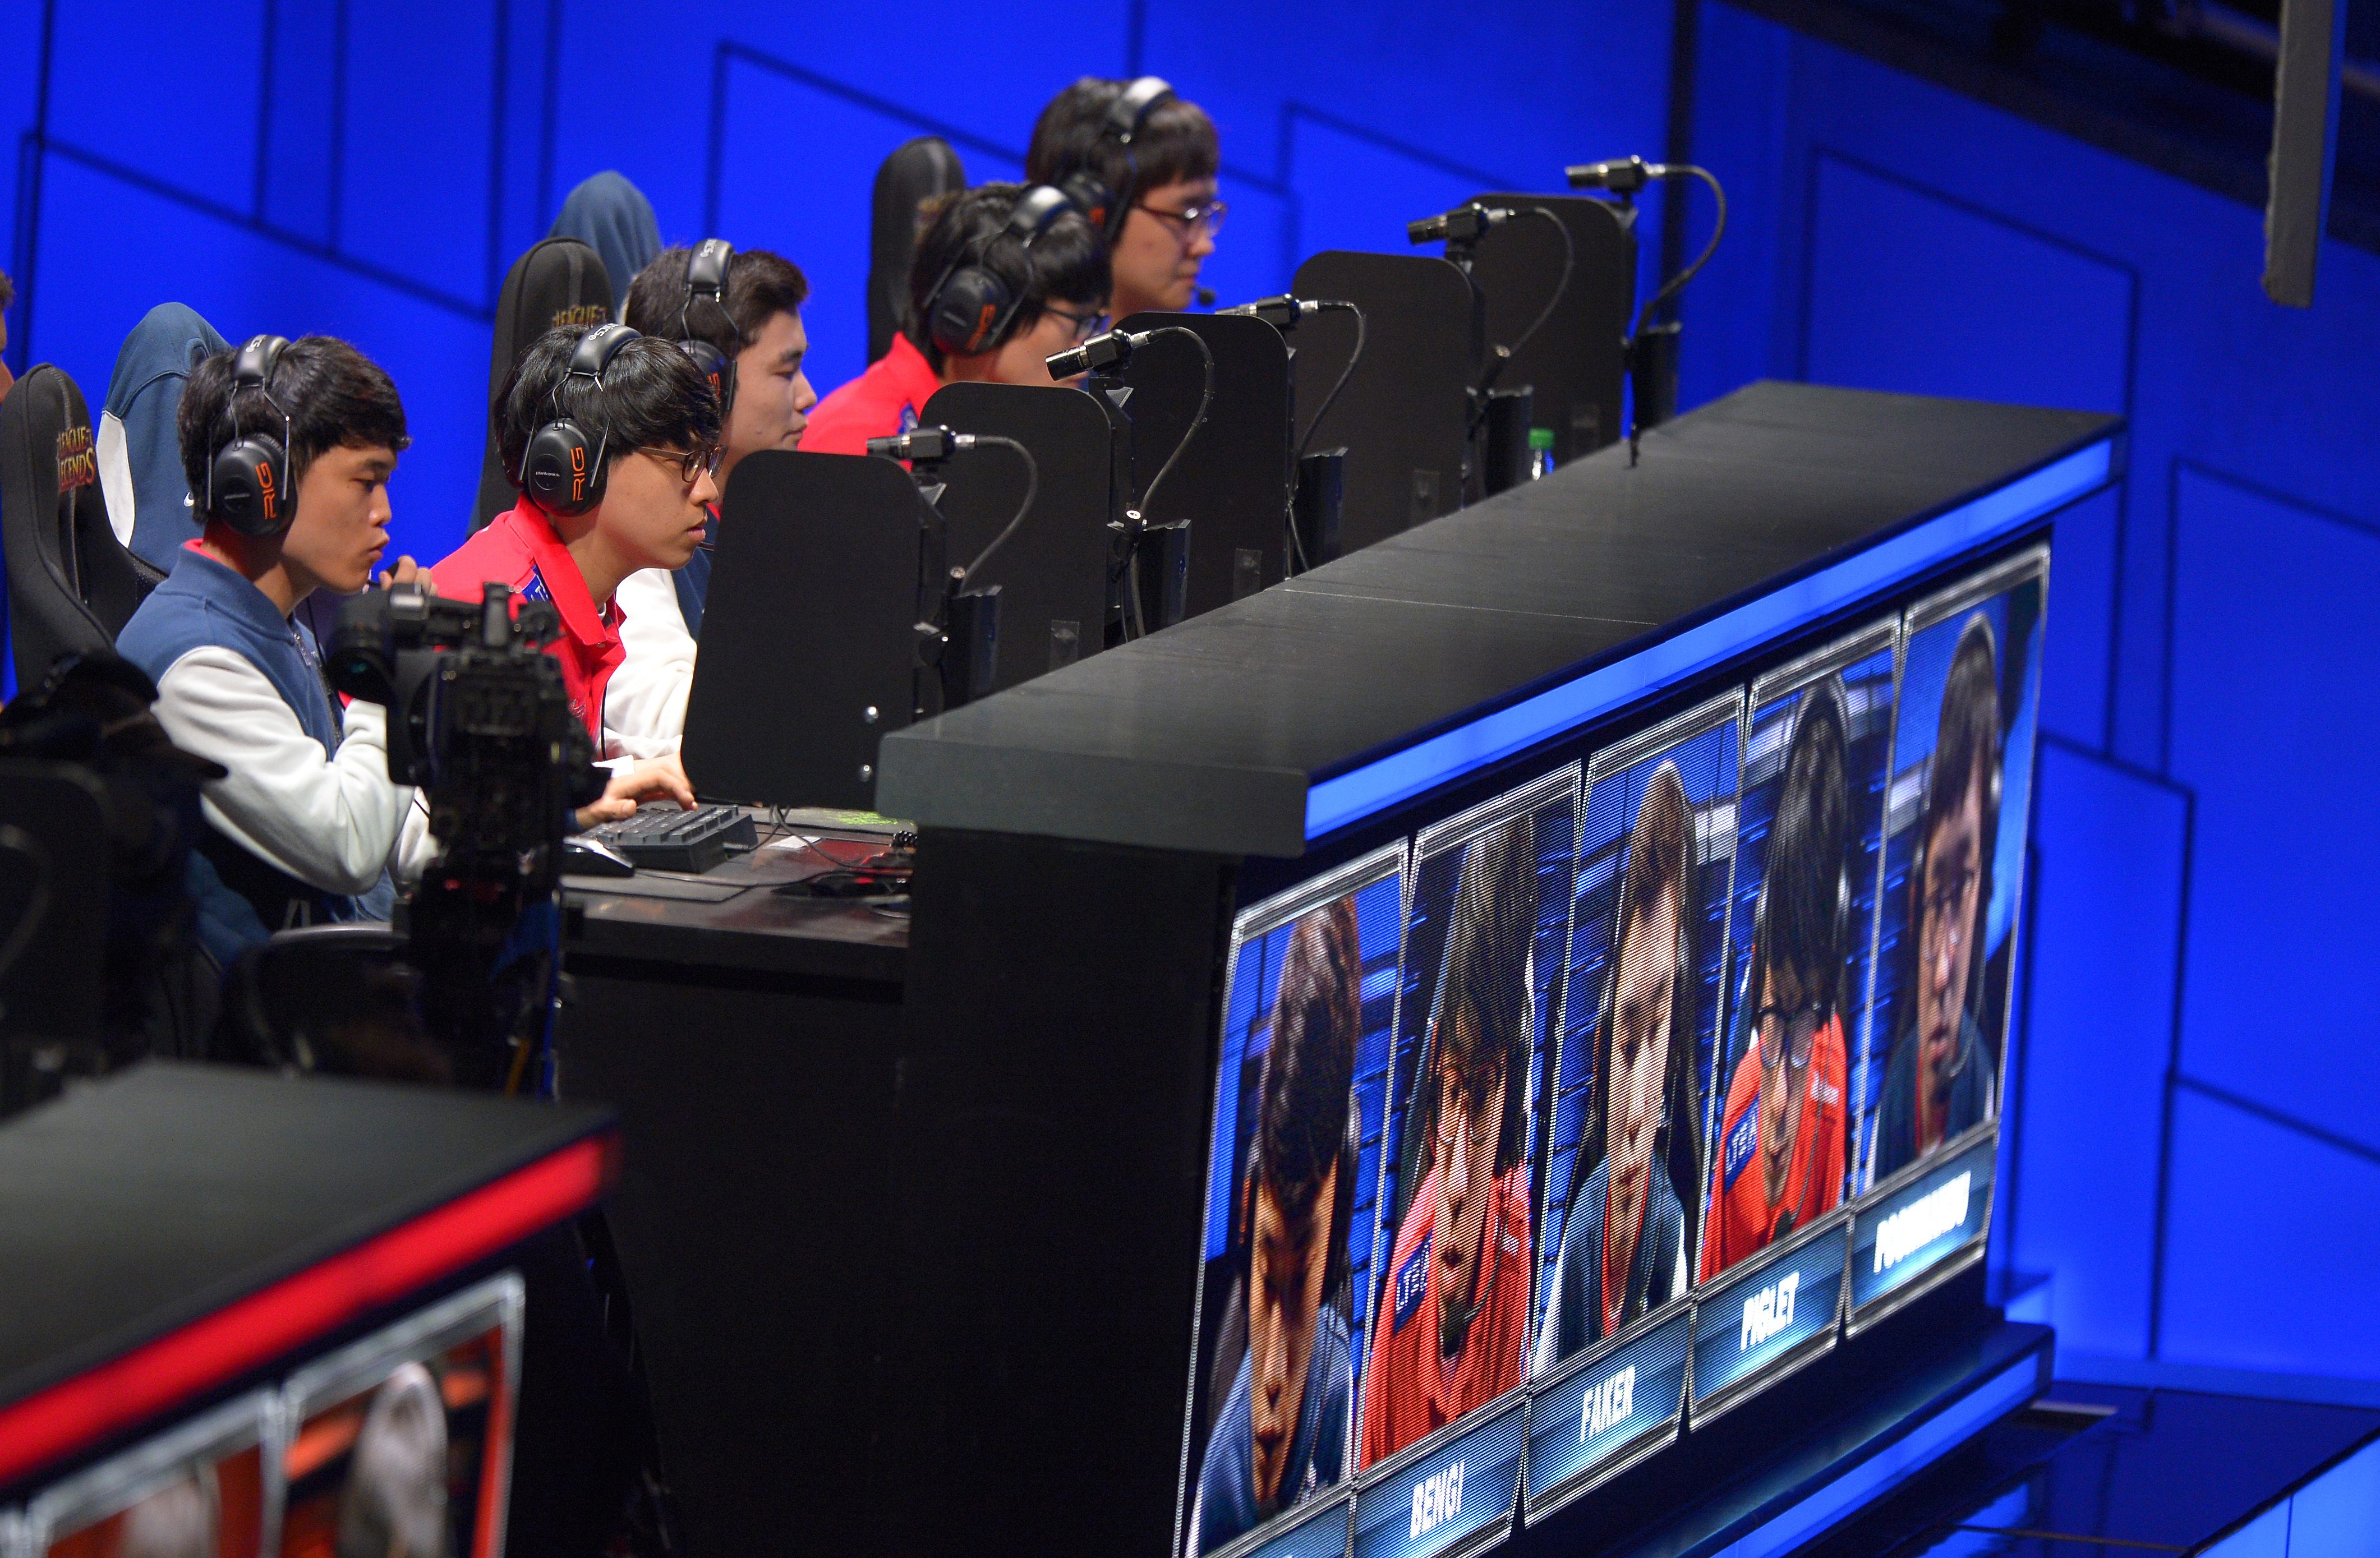 The team of SK Telecom T1 competes in the second round at the League of Legends Season 3 World Championship Final on Oct. 4, 2013, in Los Angeles.